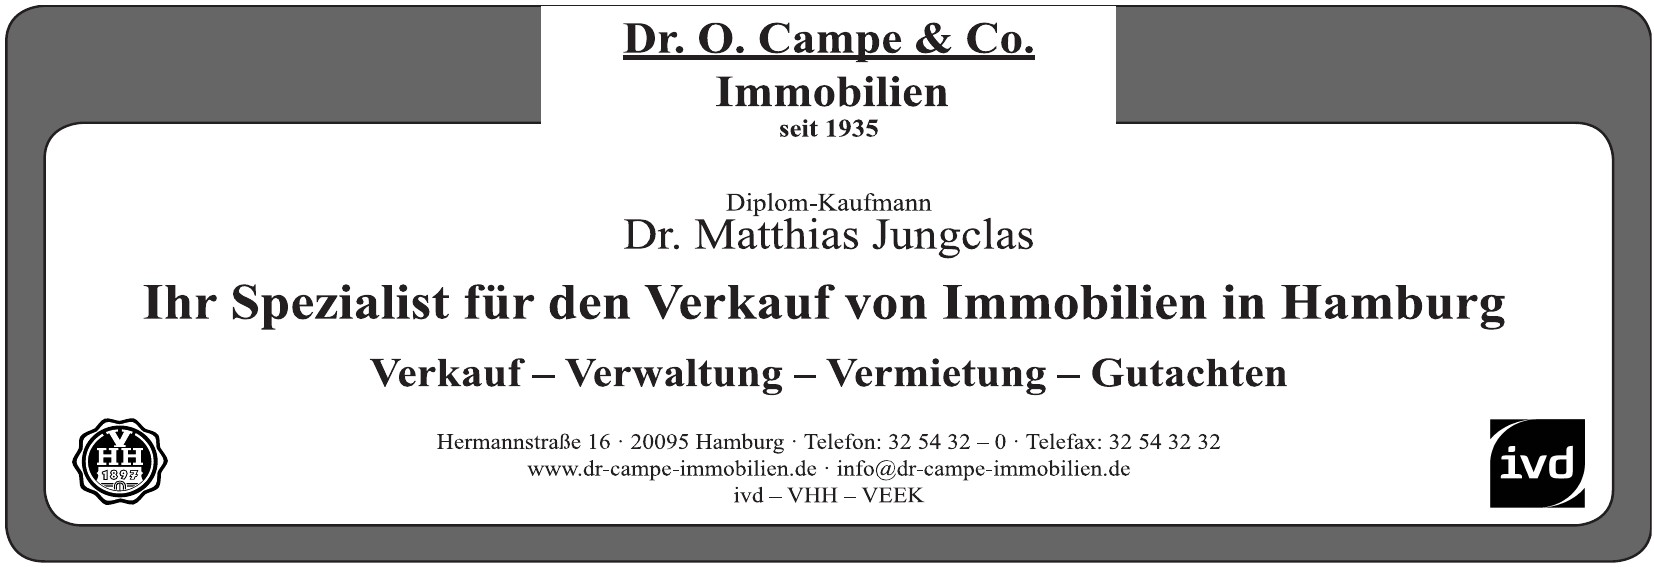 Dr. O. Campe & Co. - Immobilien